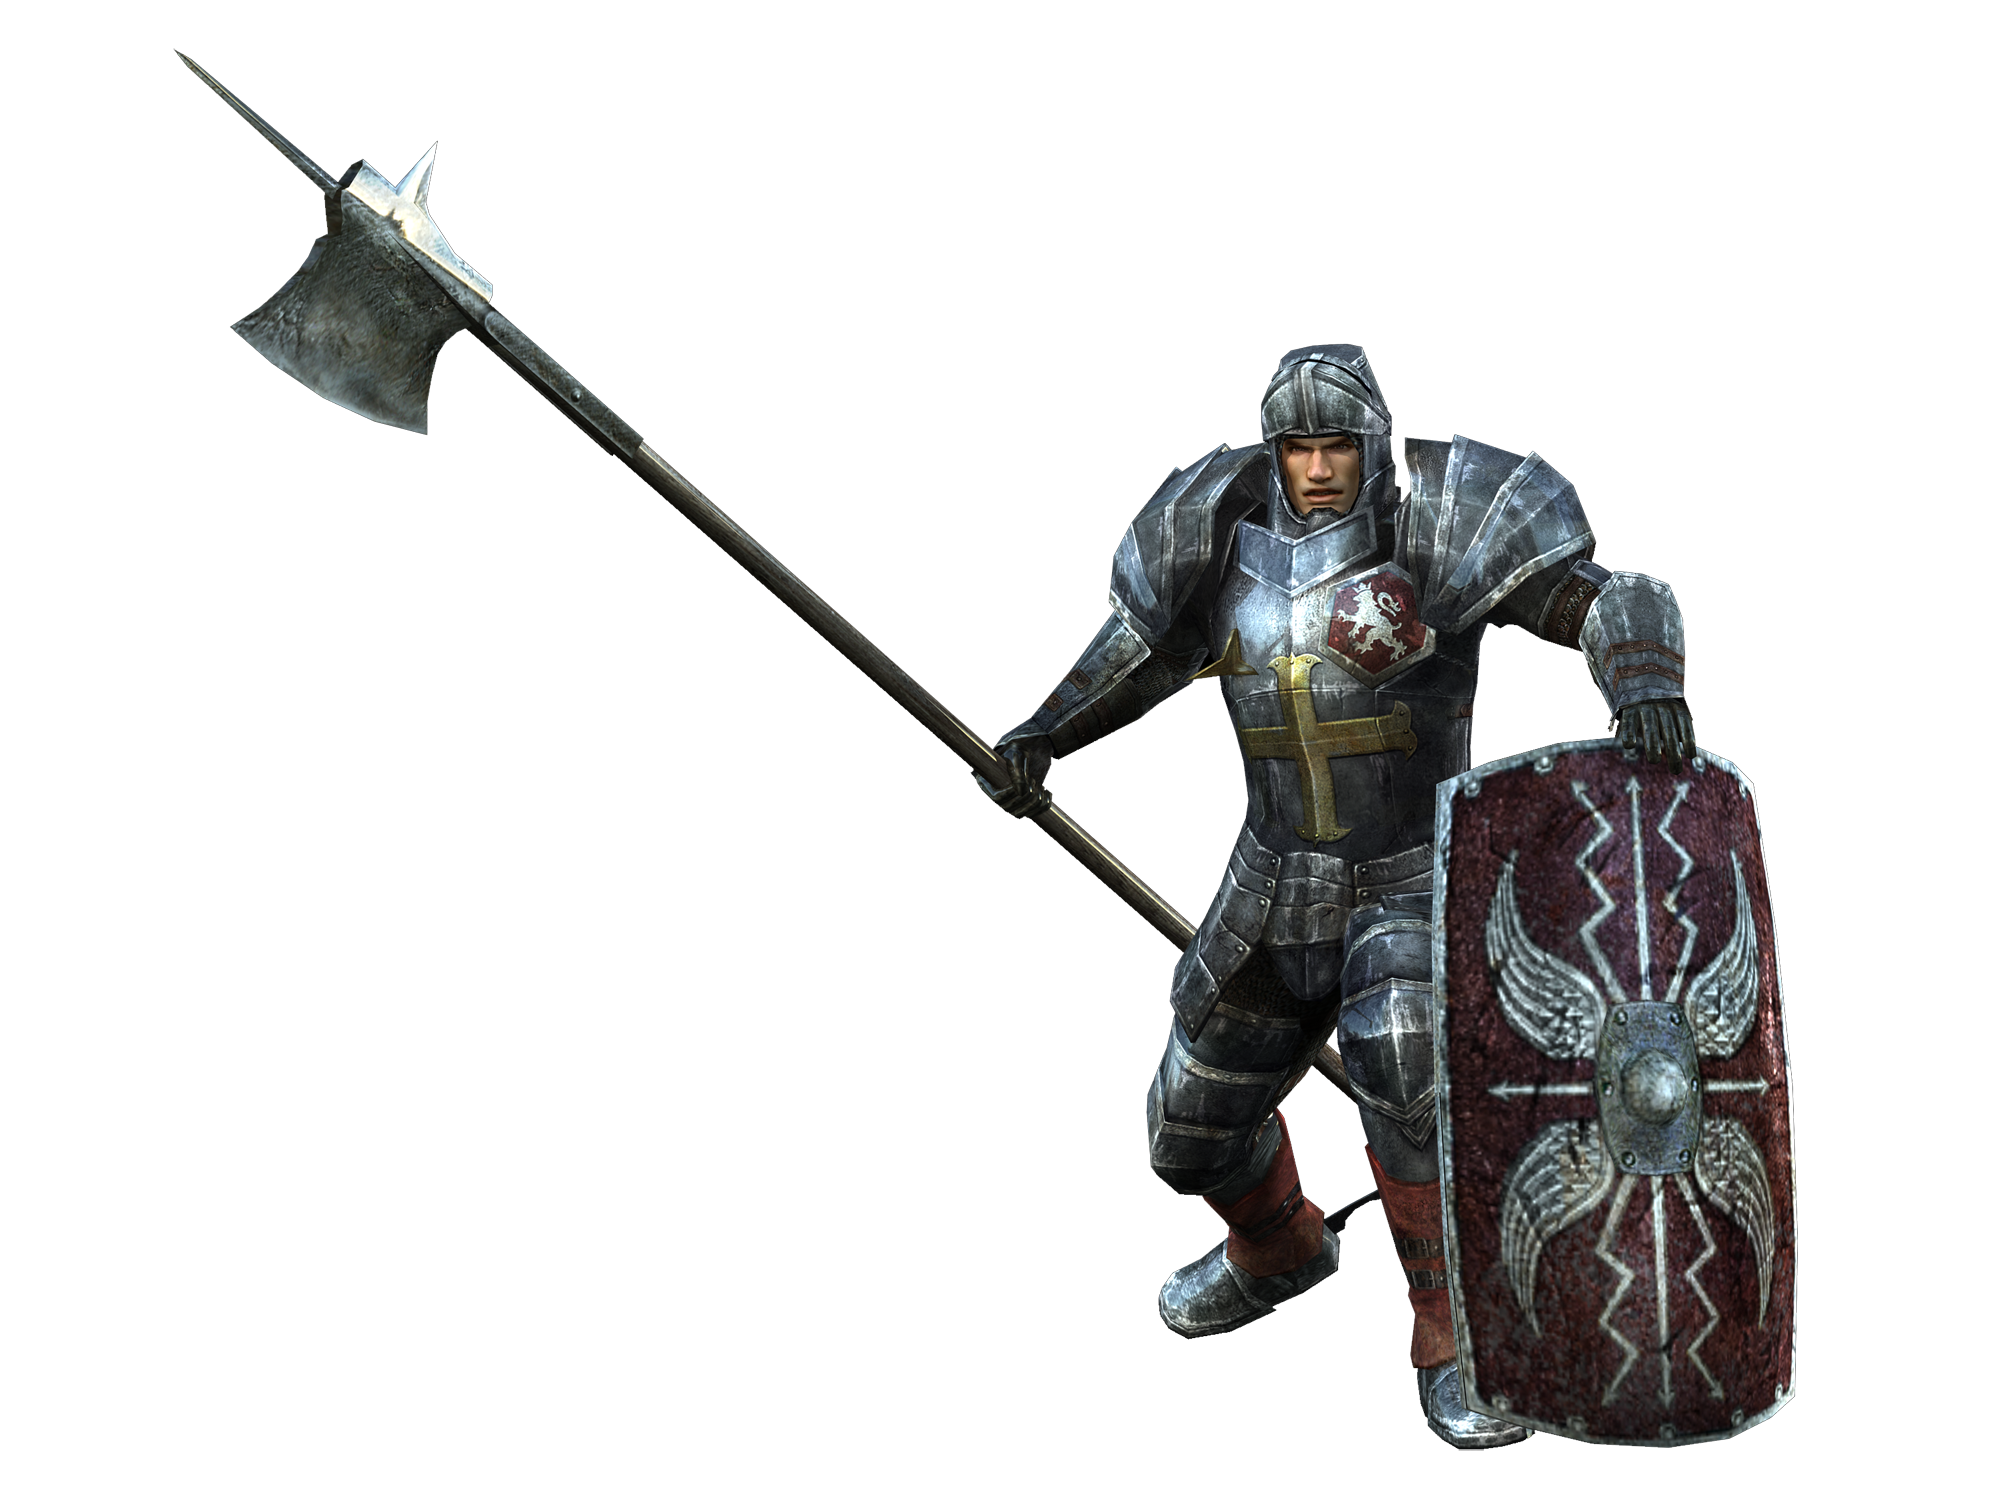 Transparent knight hundred years war. John talbot koei wiki